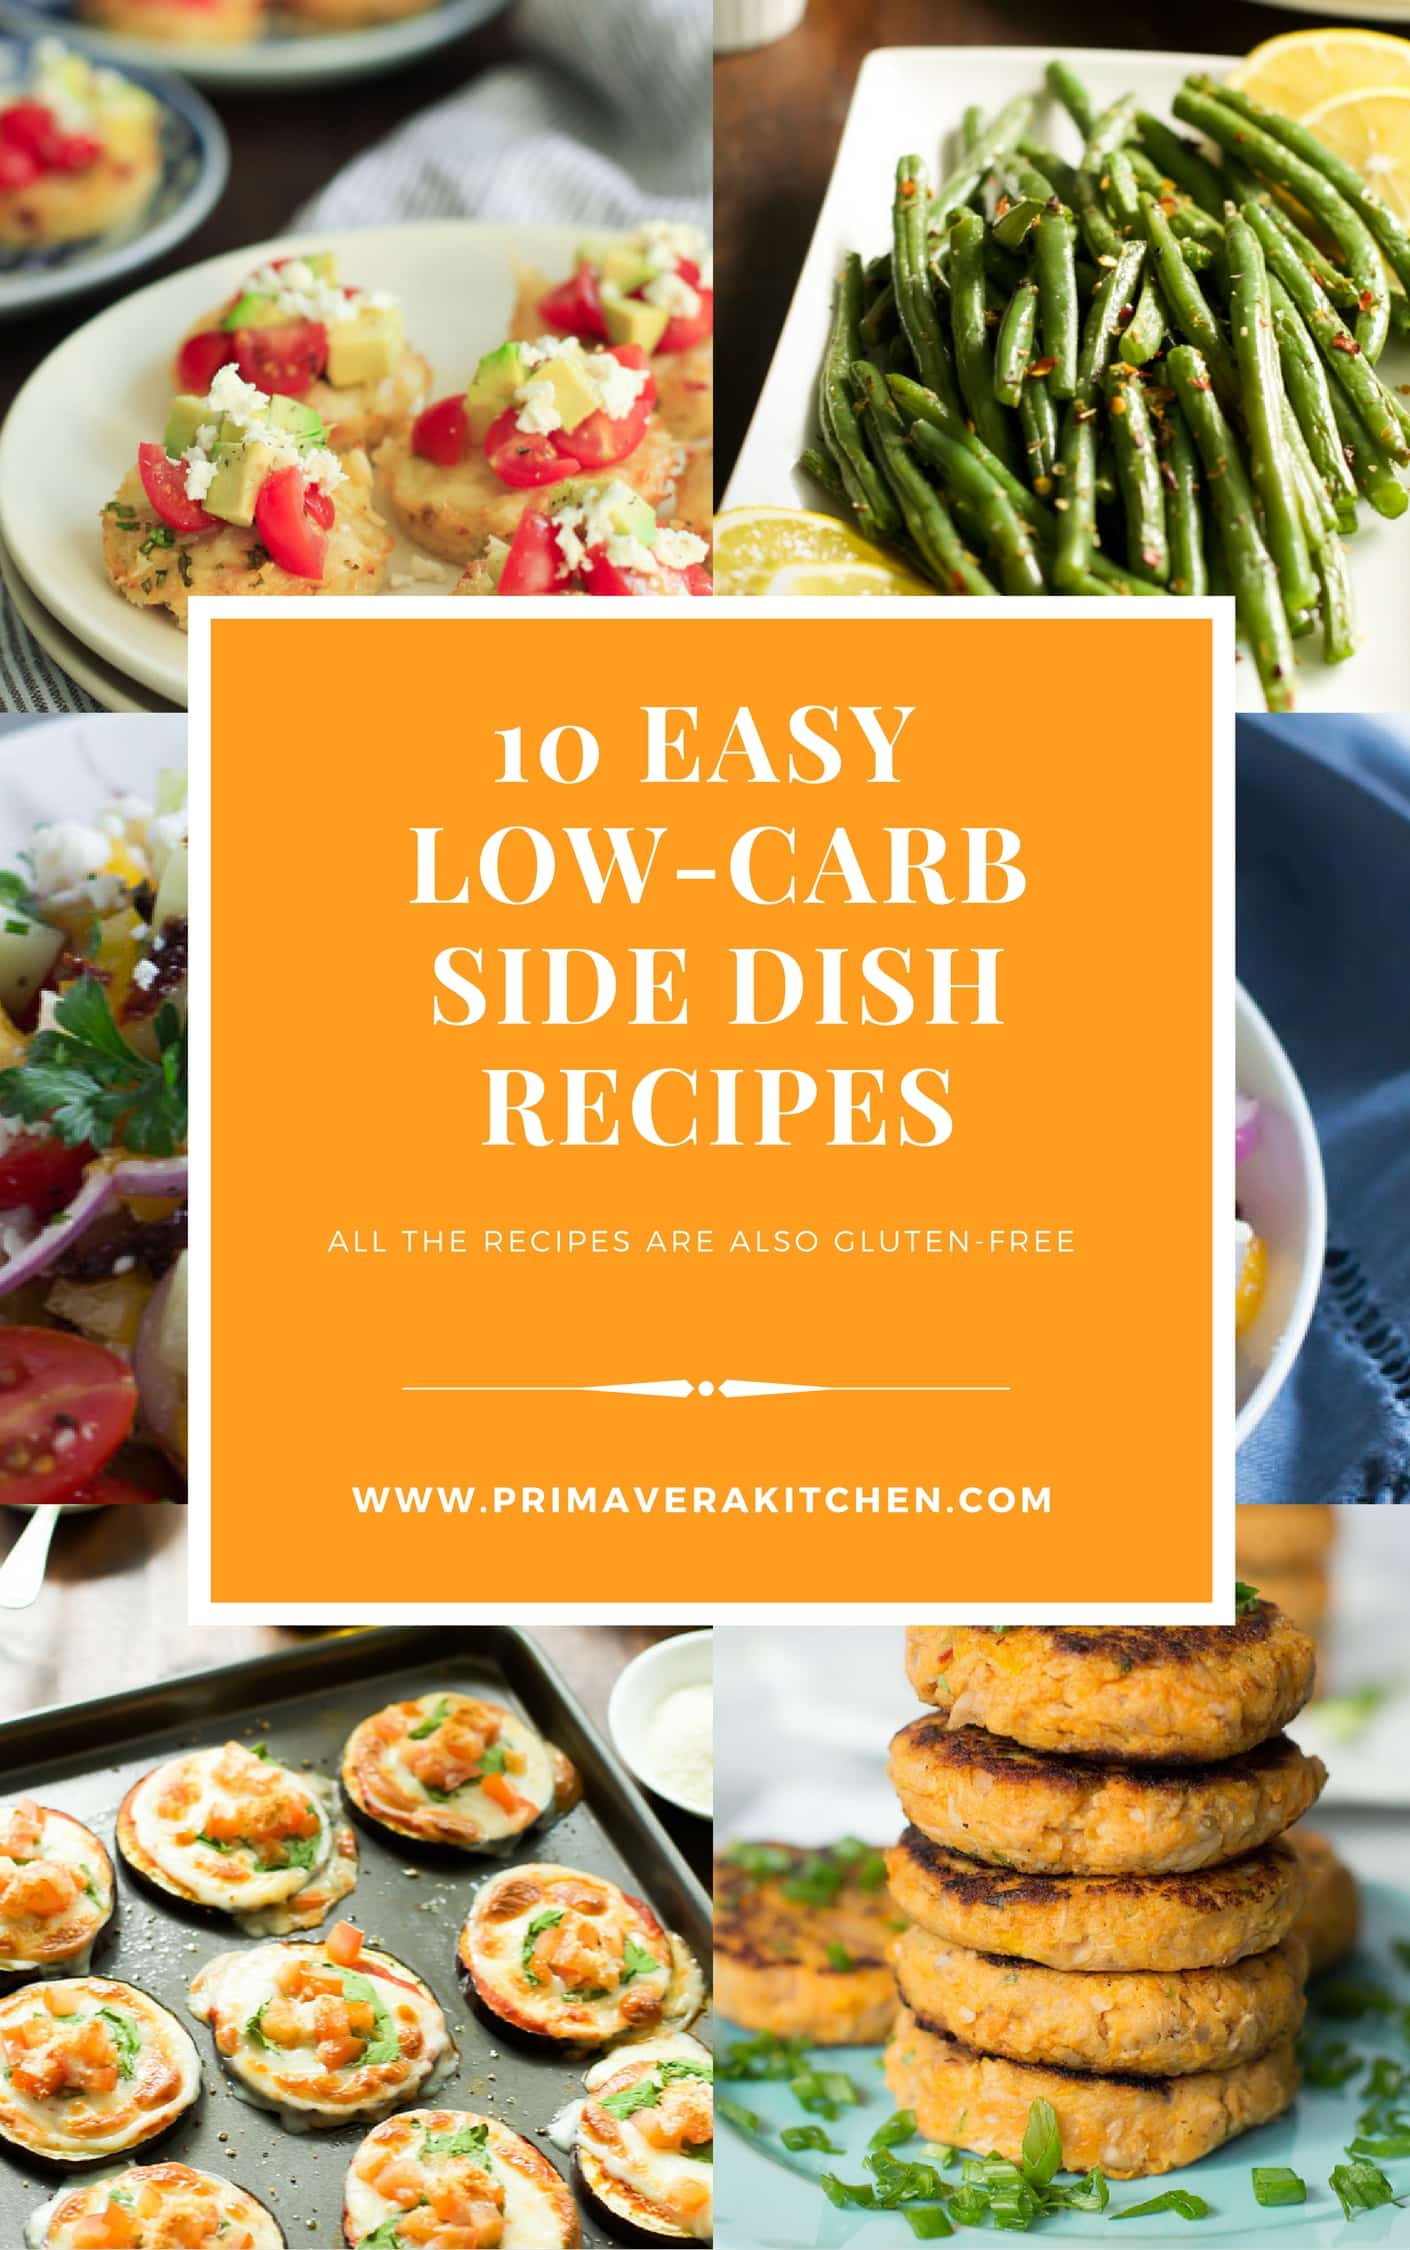 Low Carb Recipes Side Dishes  10 Easy Low Carb Side Dish Recipes Primavera Kitchen